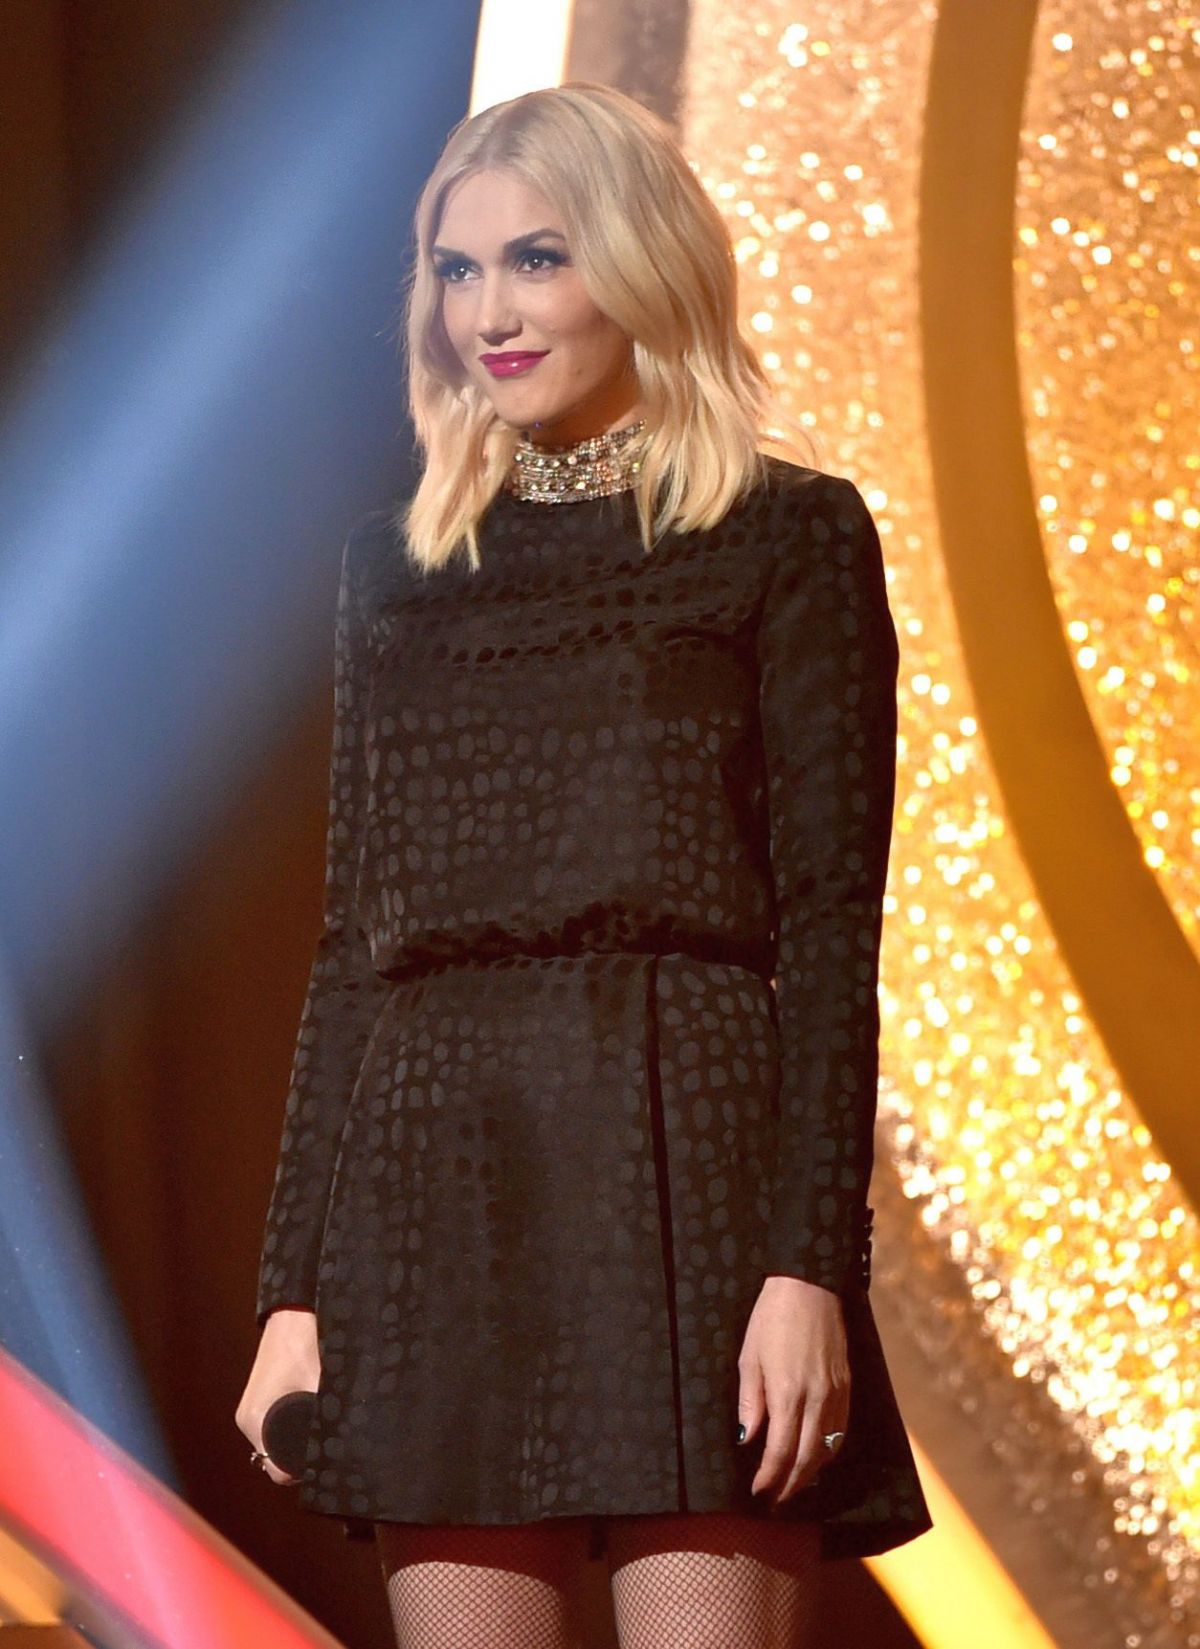 GWEN STEFANI at iHeartRadio Music Awards 2014 in Los Angeles